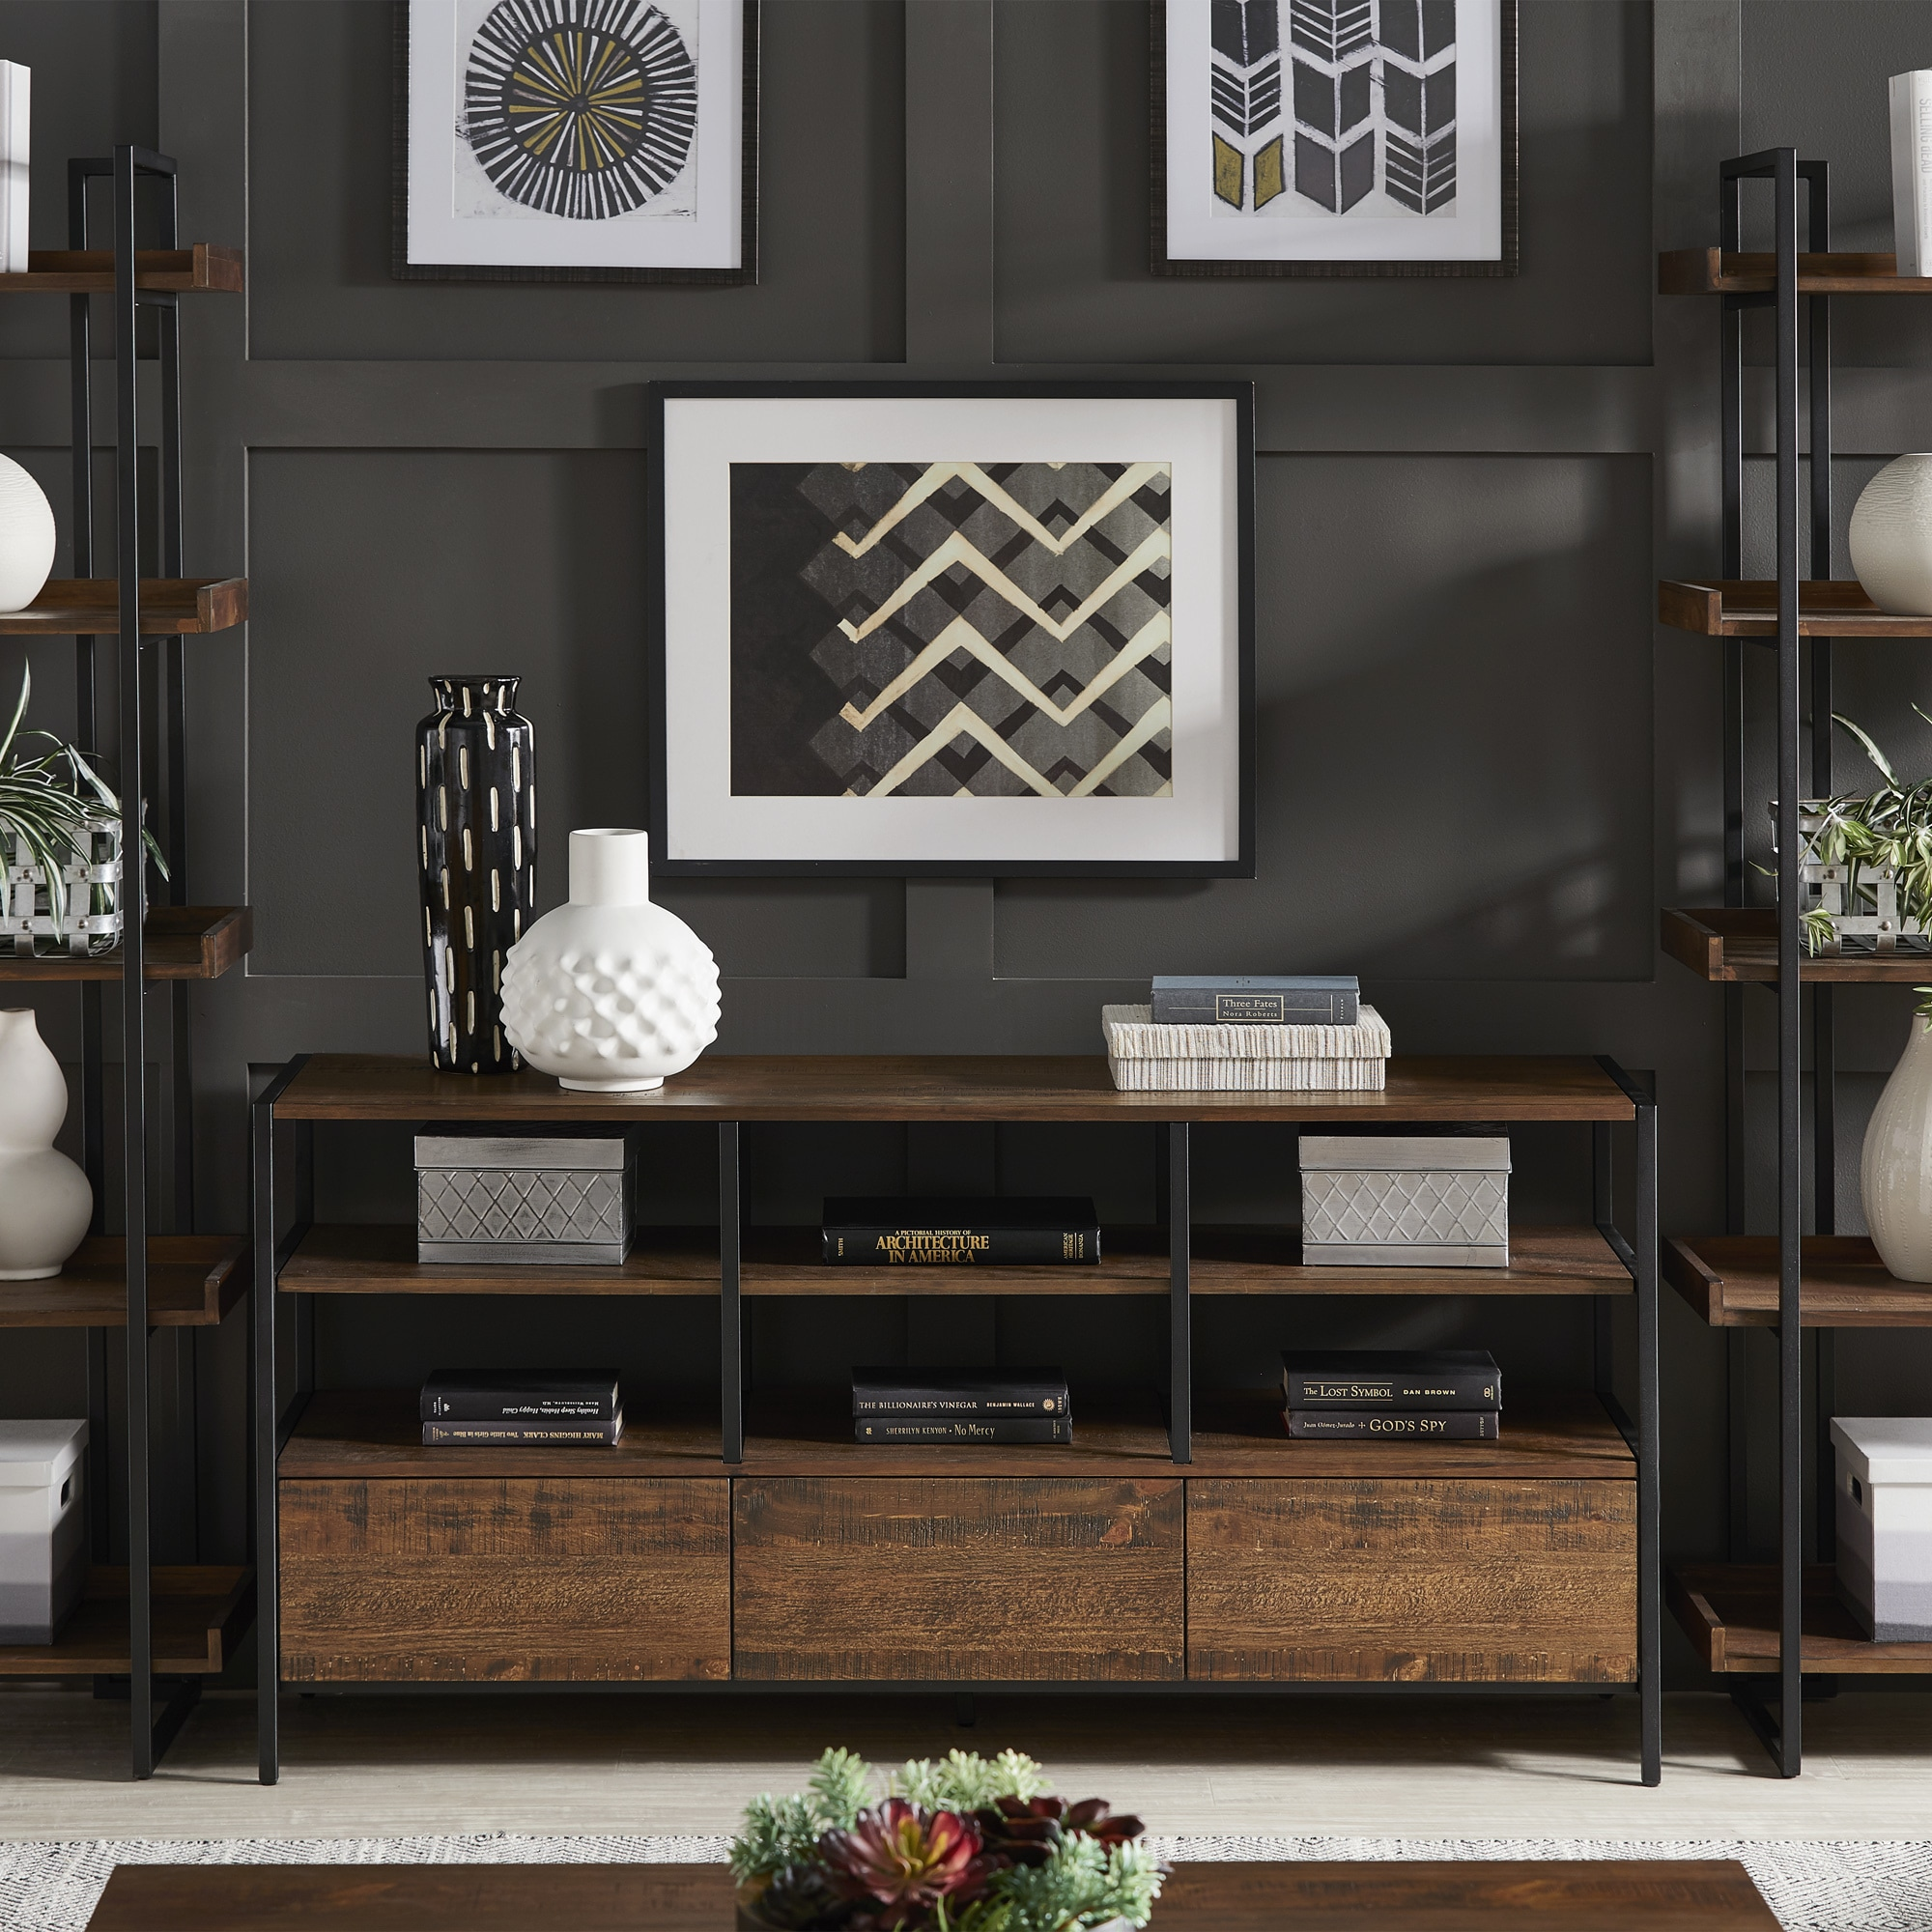 Corey Rustic Brown TV Stand Console Tables by iNSPIRE Q Modern - Free  Shipping Today - Overstock.com - 25506046